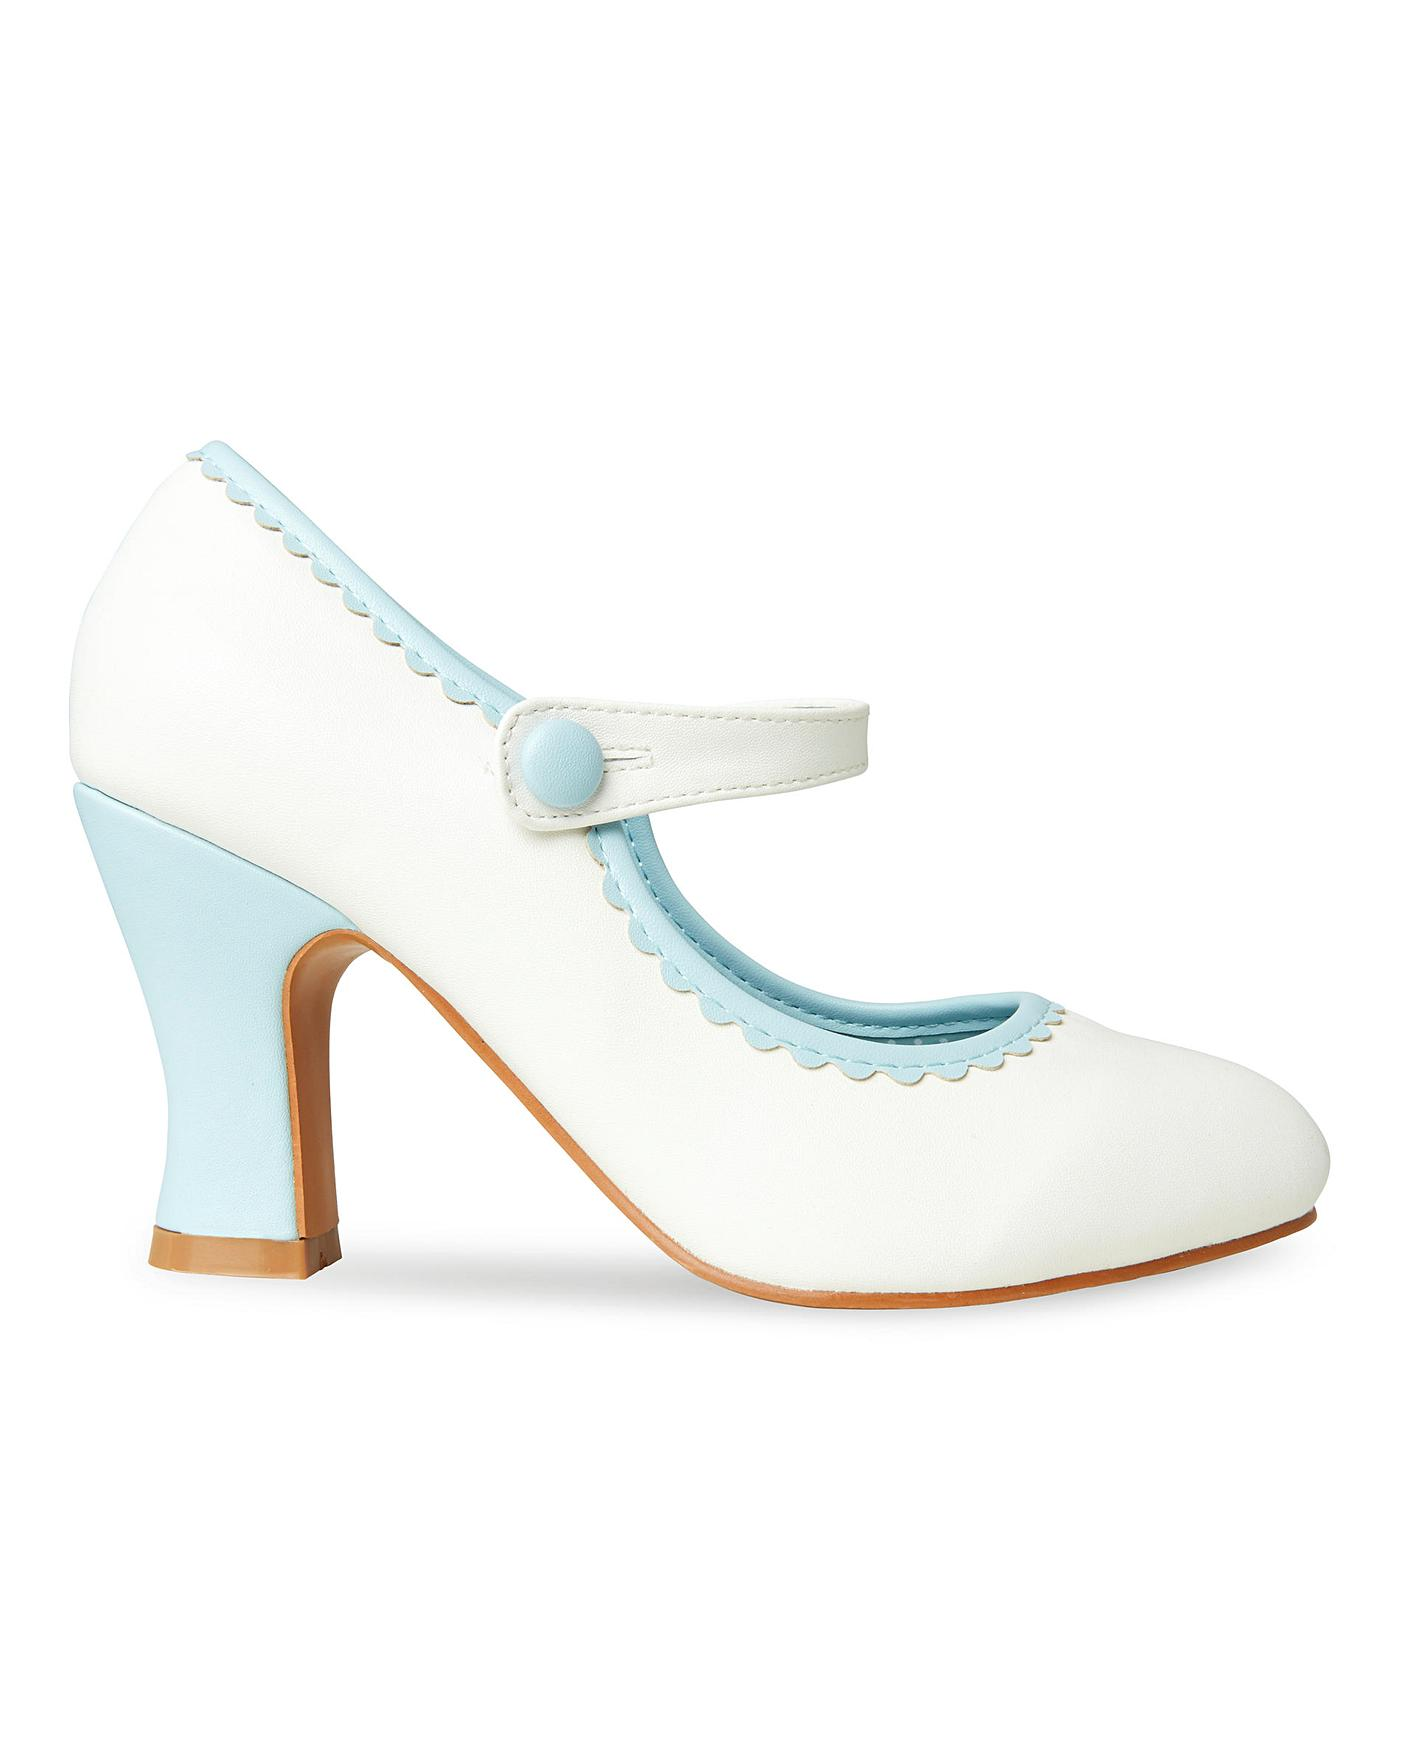 mary jane chaussure for wide feet